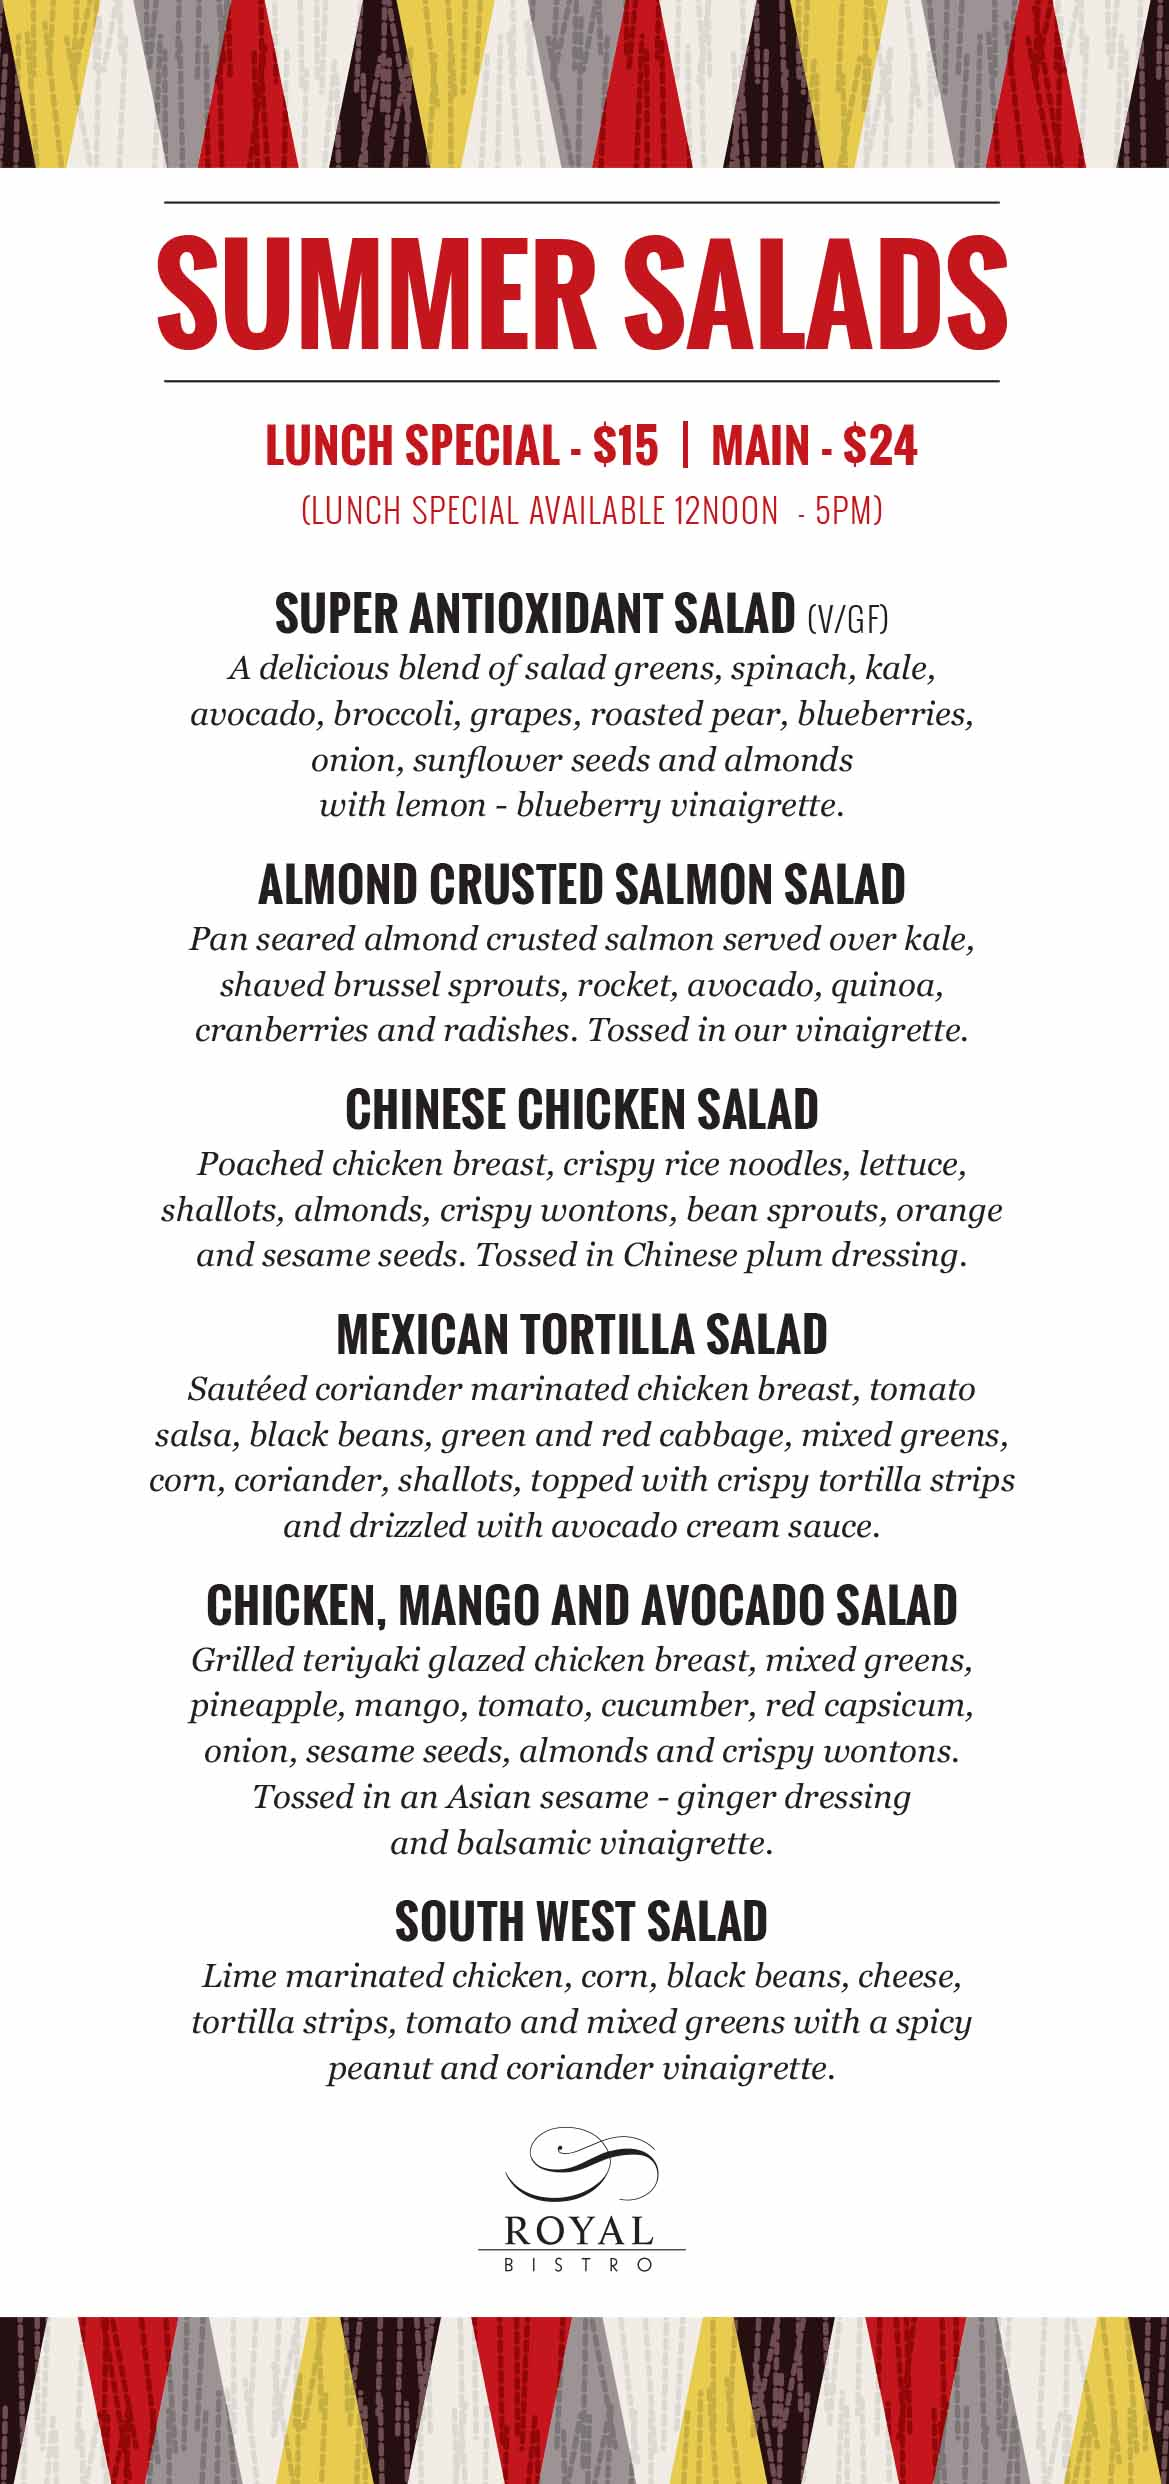 TRHR DL Summer Salads Menu 17 Final